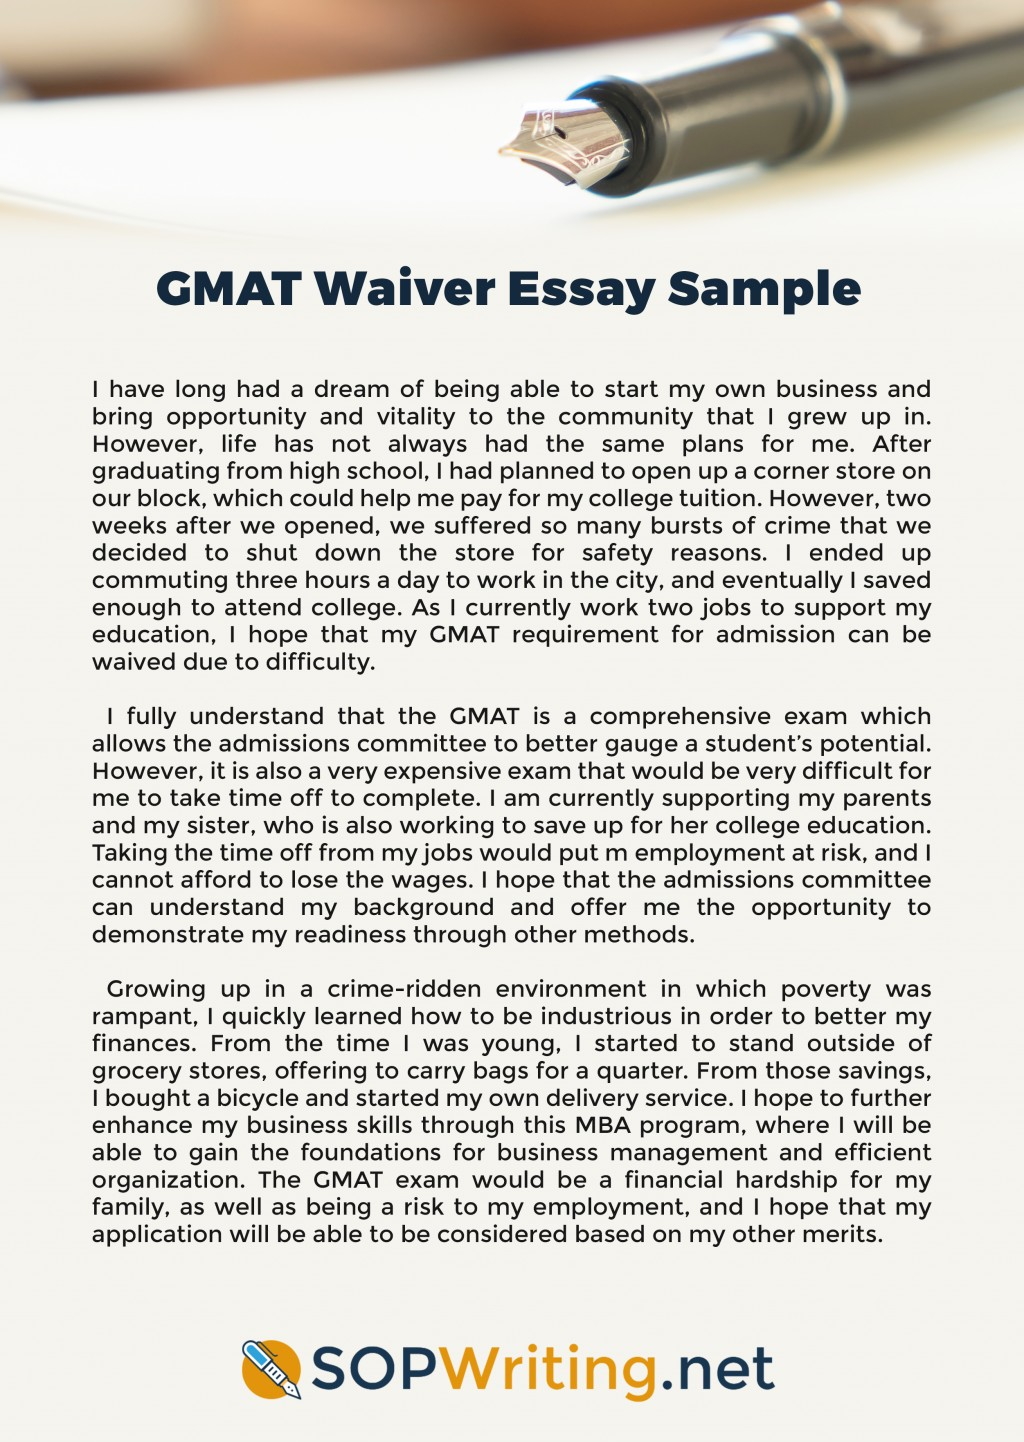 019 Essay Example Gmat Writing Dispatcher Resume Examples Best Format Waiver S Awa Samples Pdf Sample Topics Issue Analysis Of An Questions Application Argument Astounding Score 4.5 Large